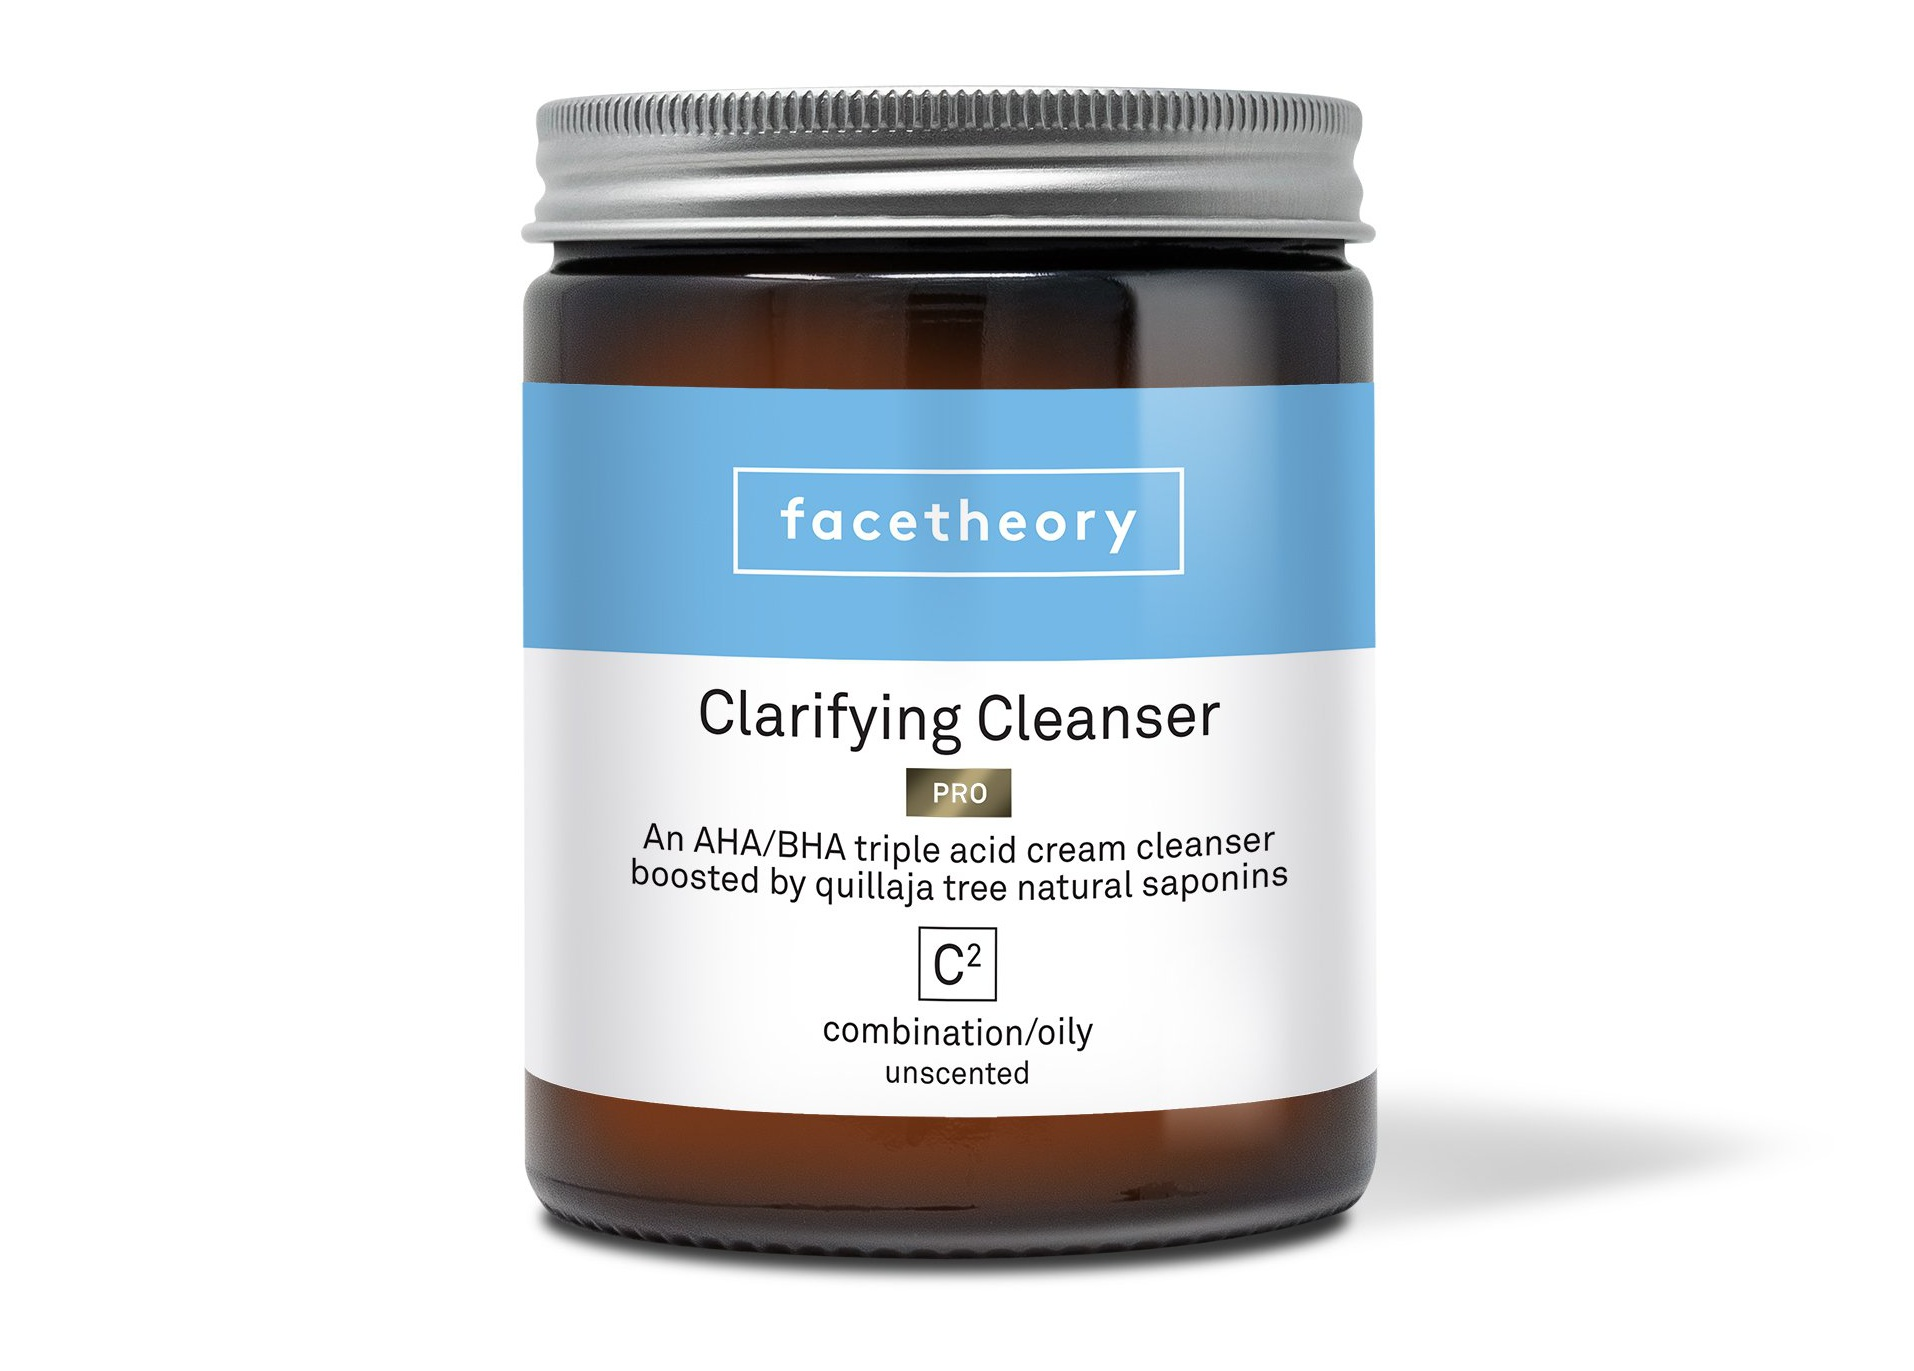 facetheory Clarifying Cream Cleanser C2 Pro